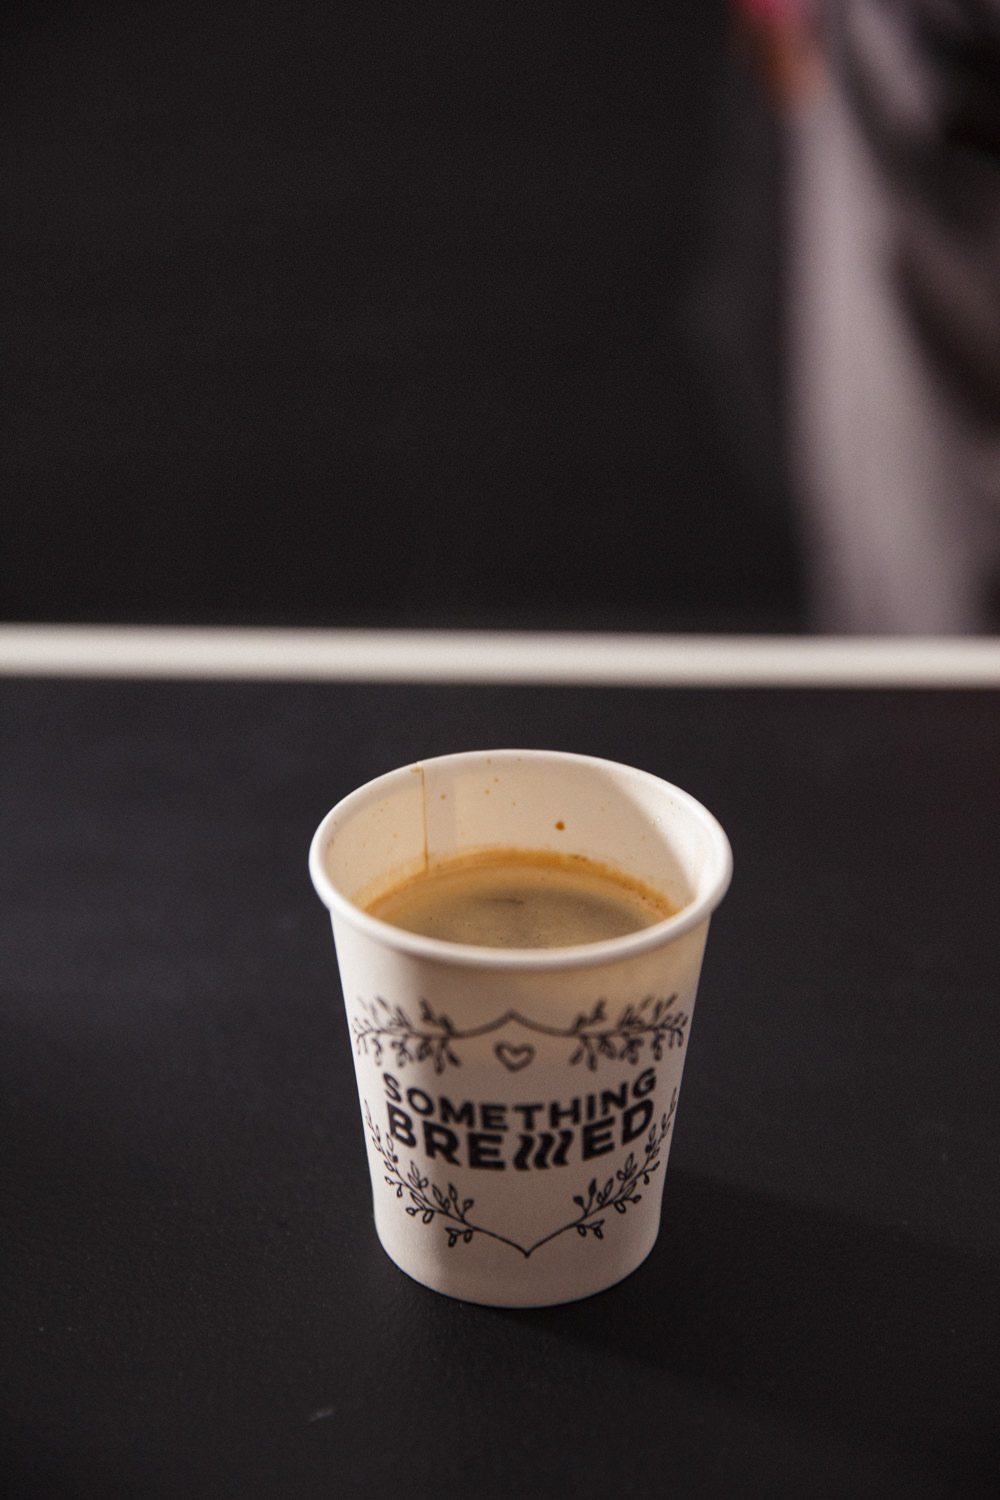 Long Black Double shot of espresso with a little hot water. Strong and black.